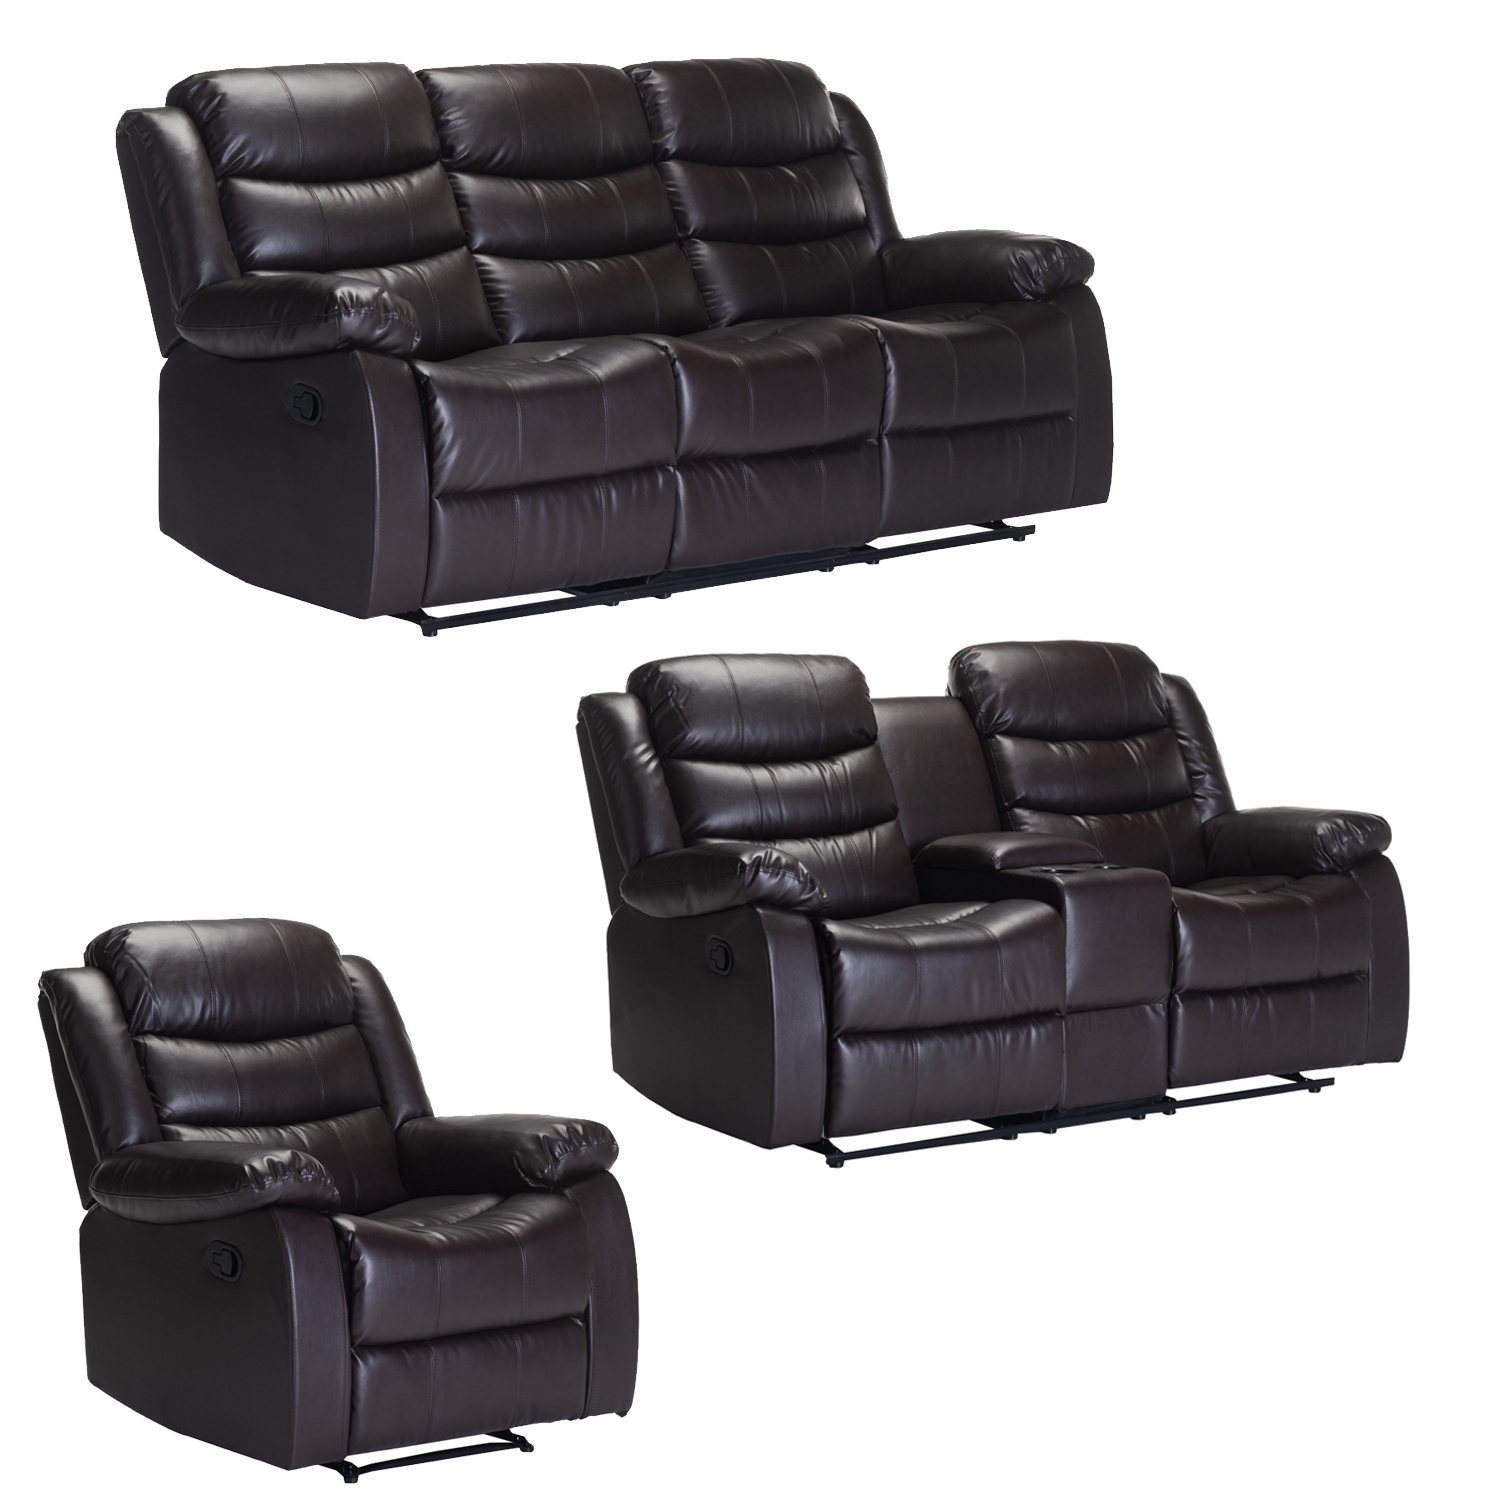 YUZI BONDED LEATHER UPPER 3PC SET BROWN WITH CONSOLE